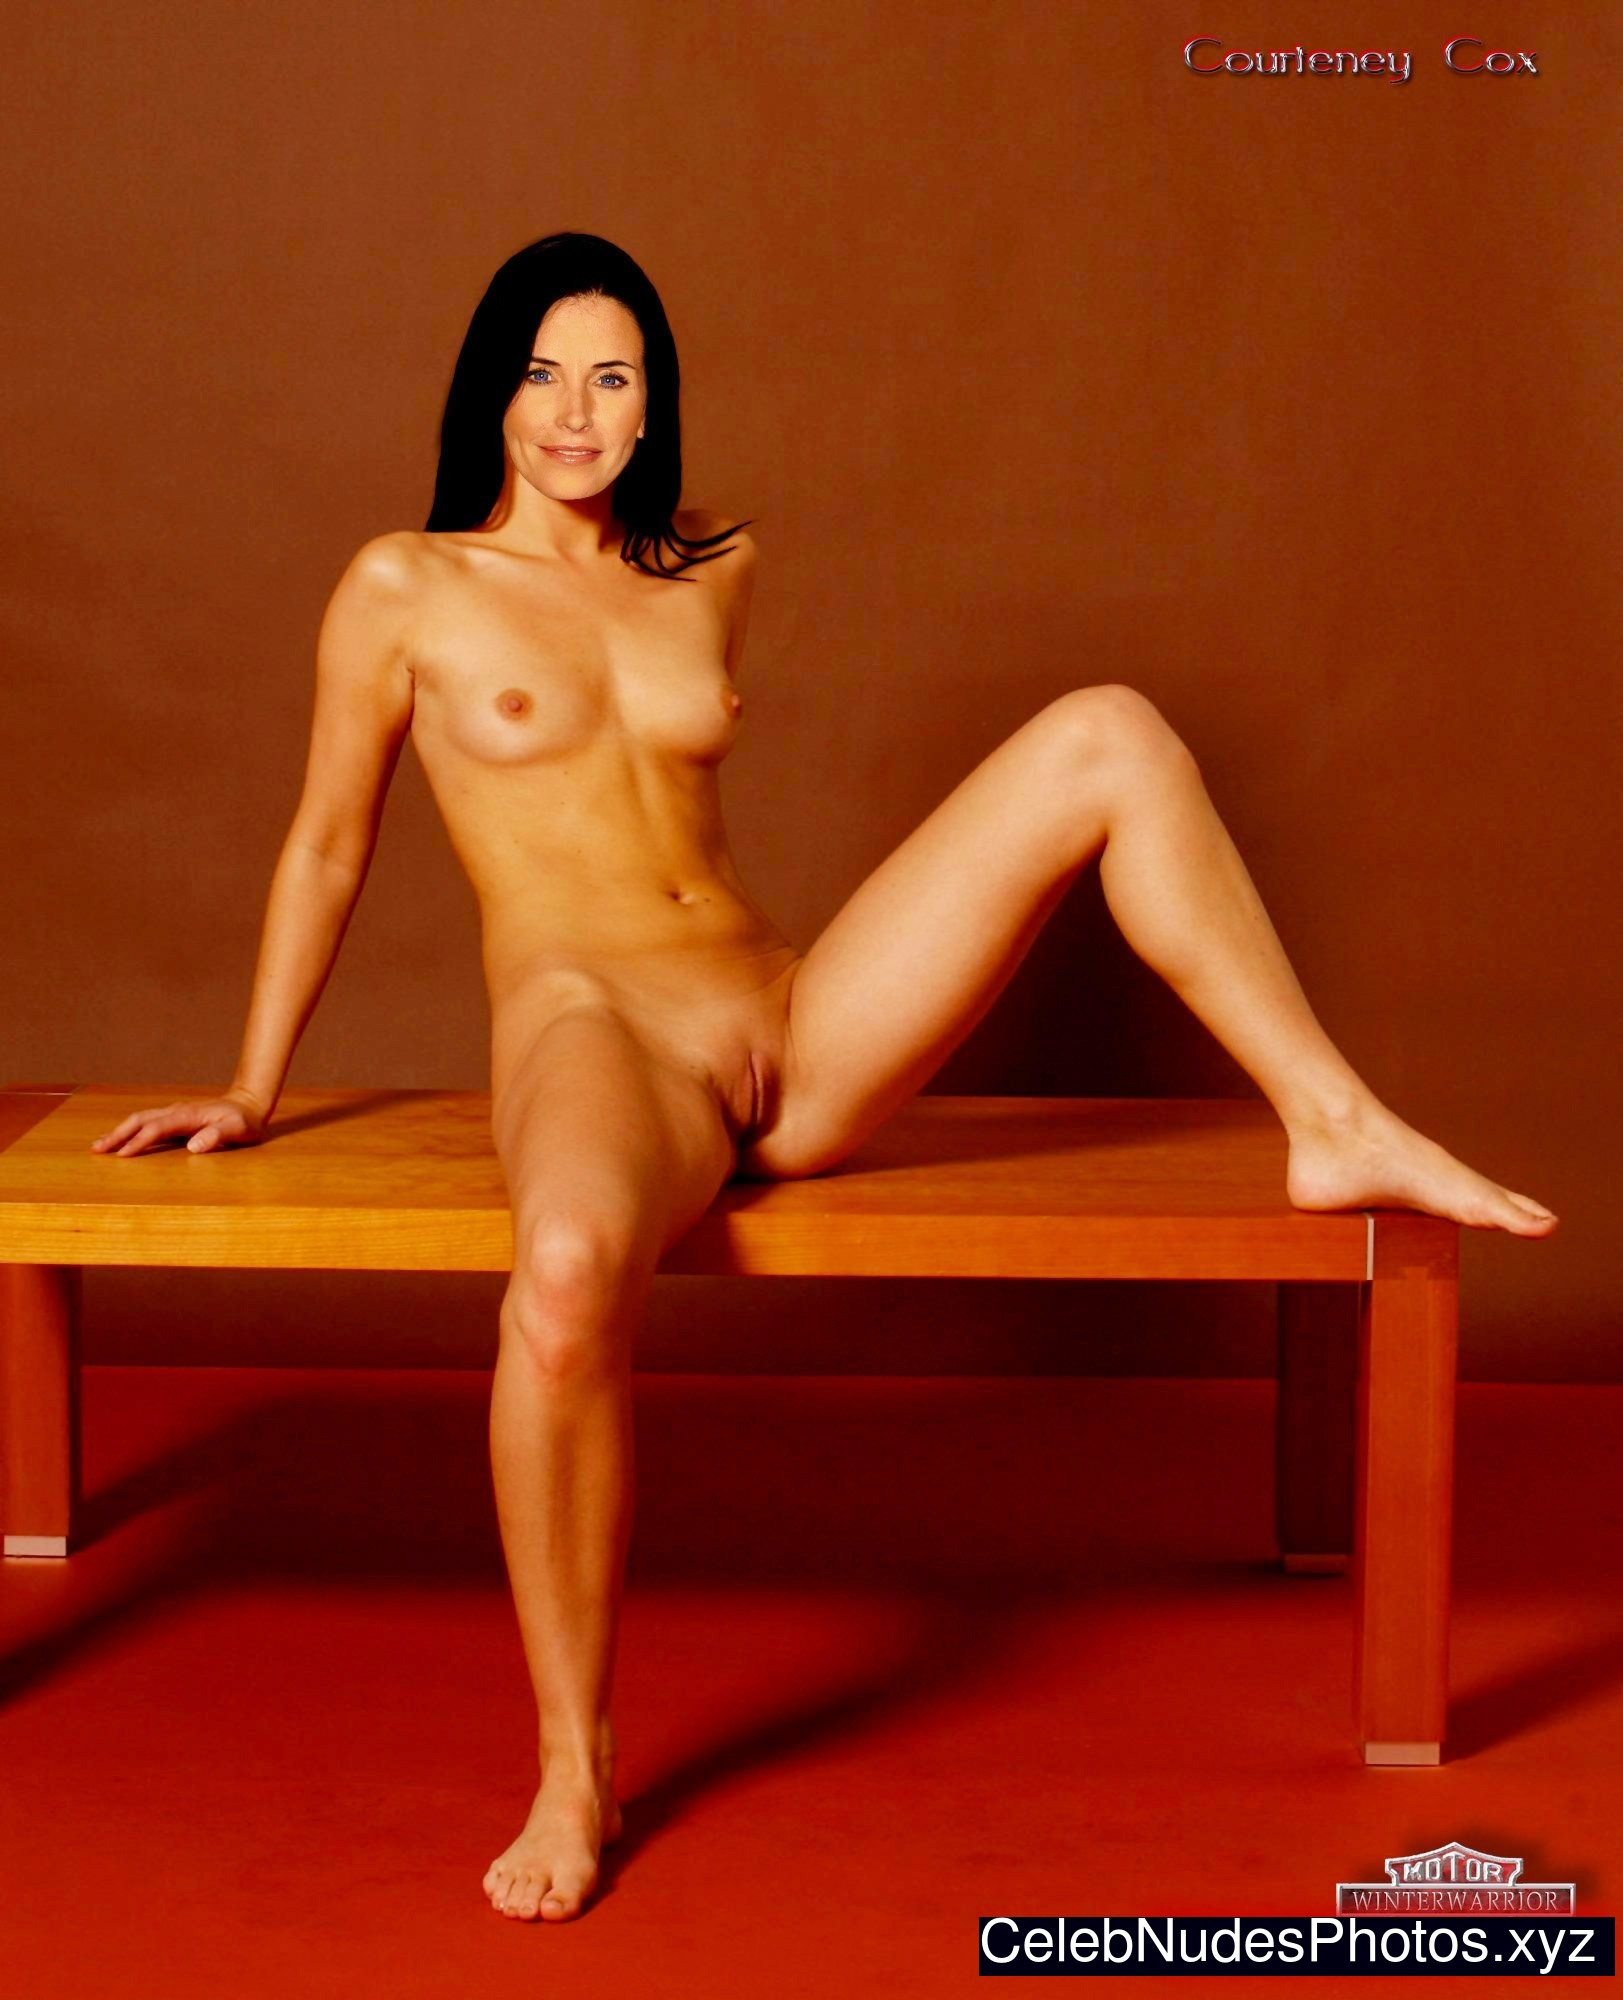 courtney cox nude and naked